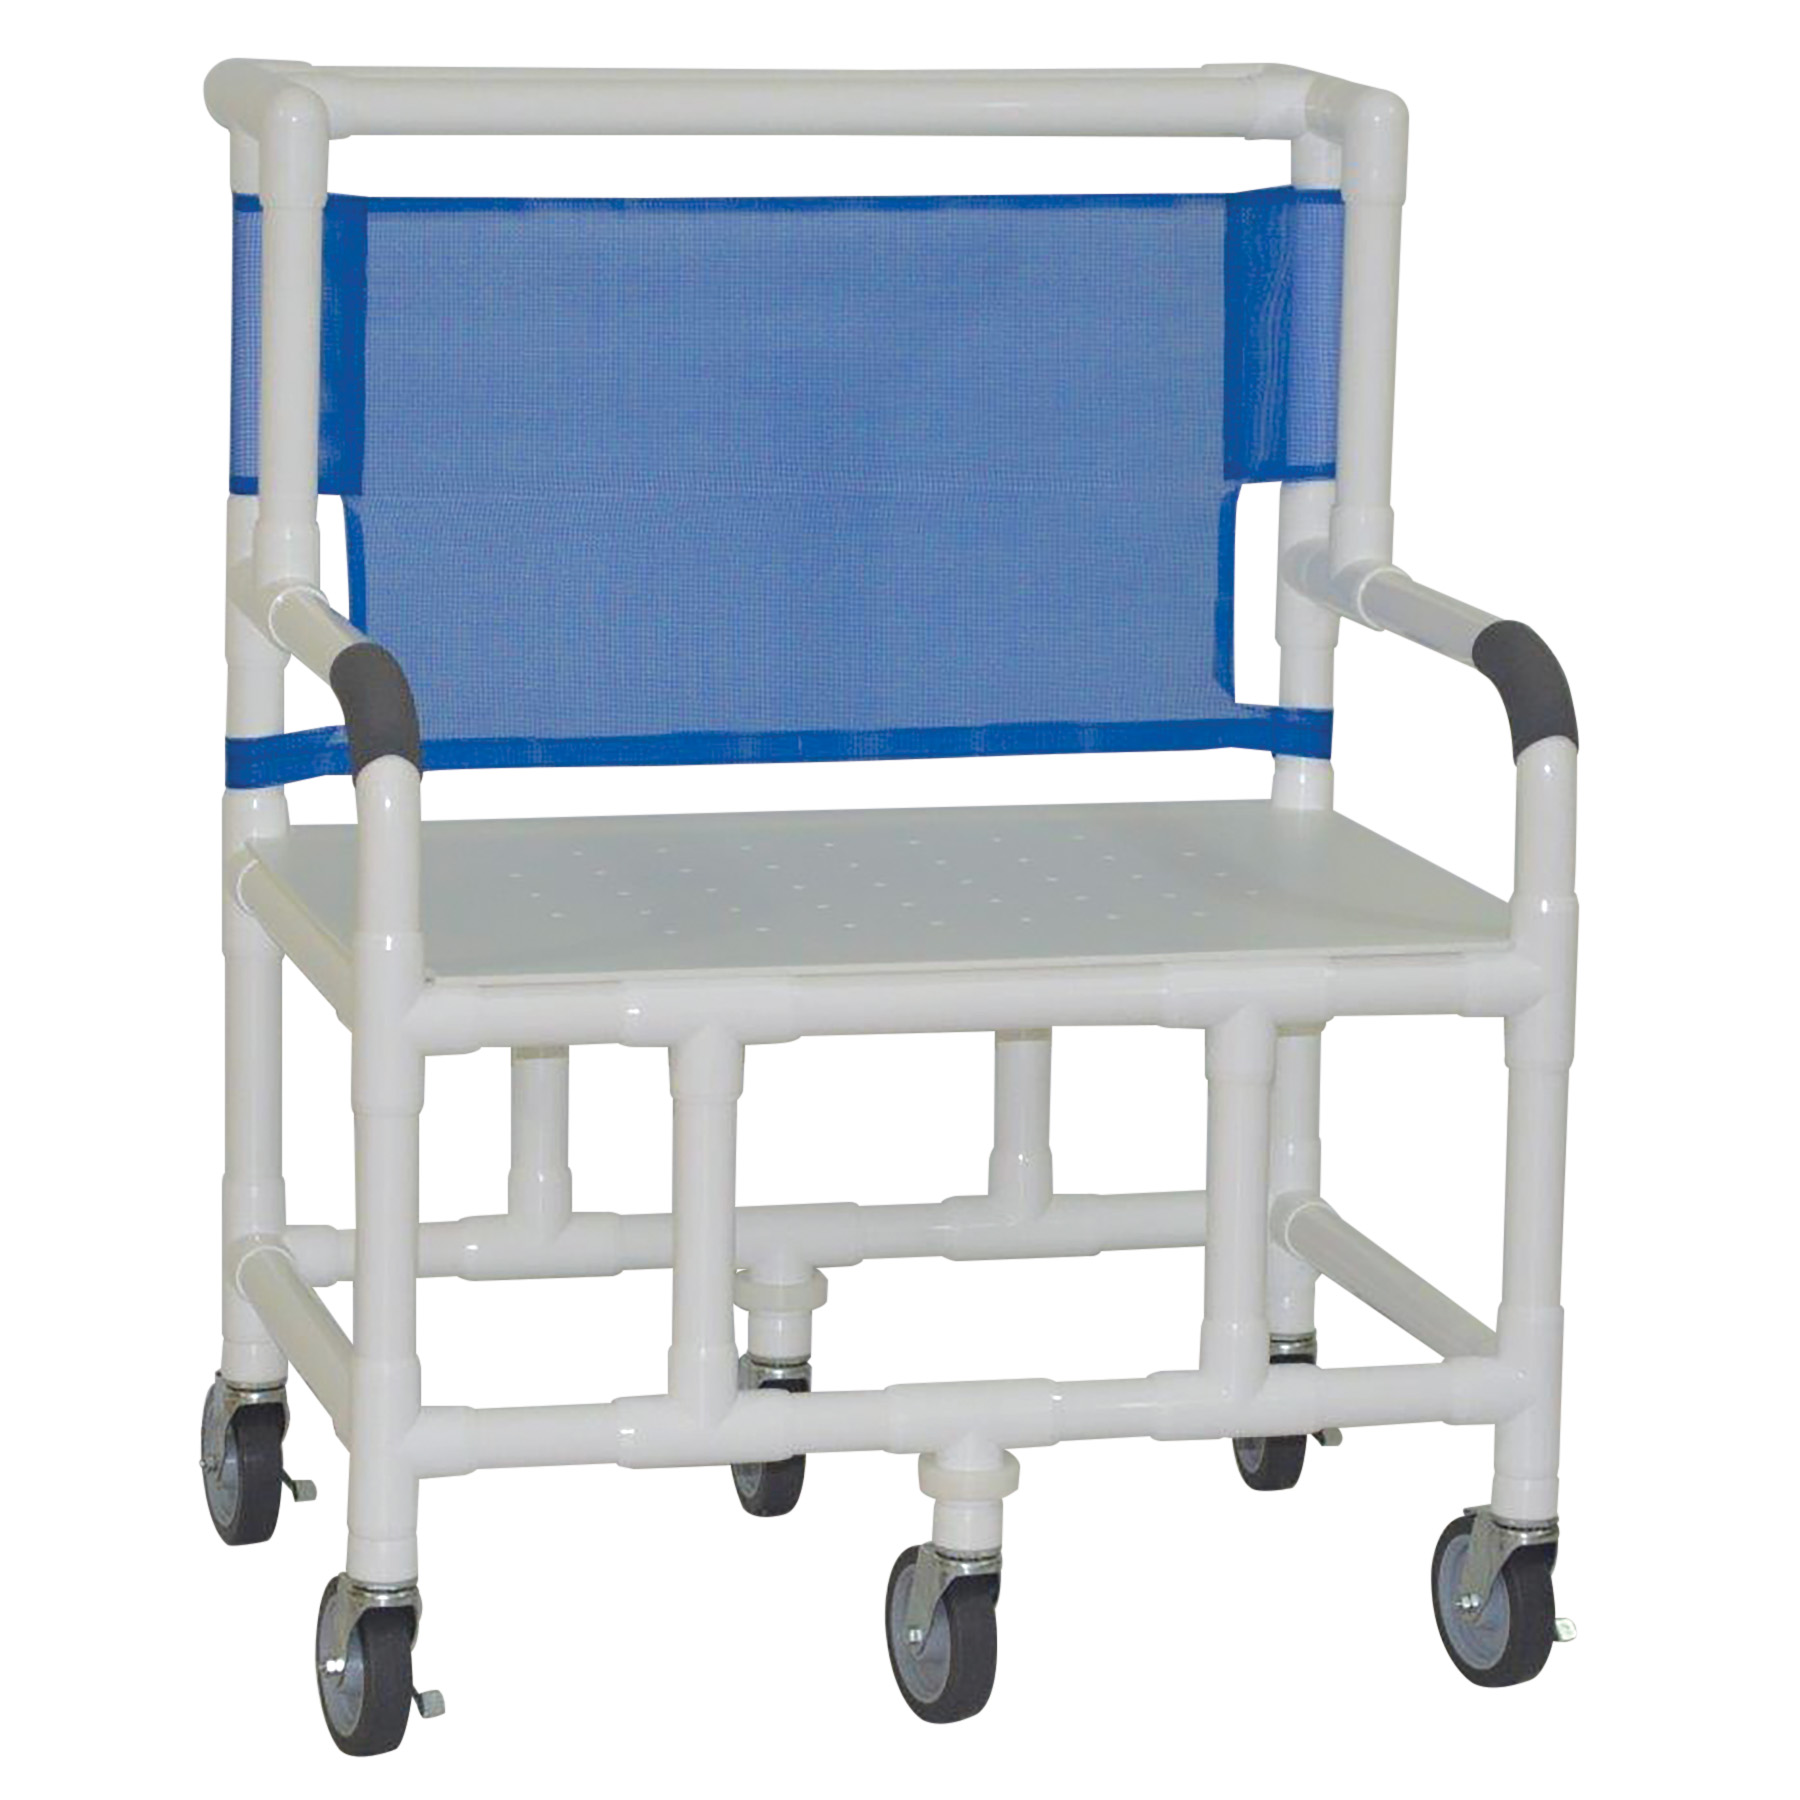 Bariatric Shower Chair with Fixed Arms